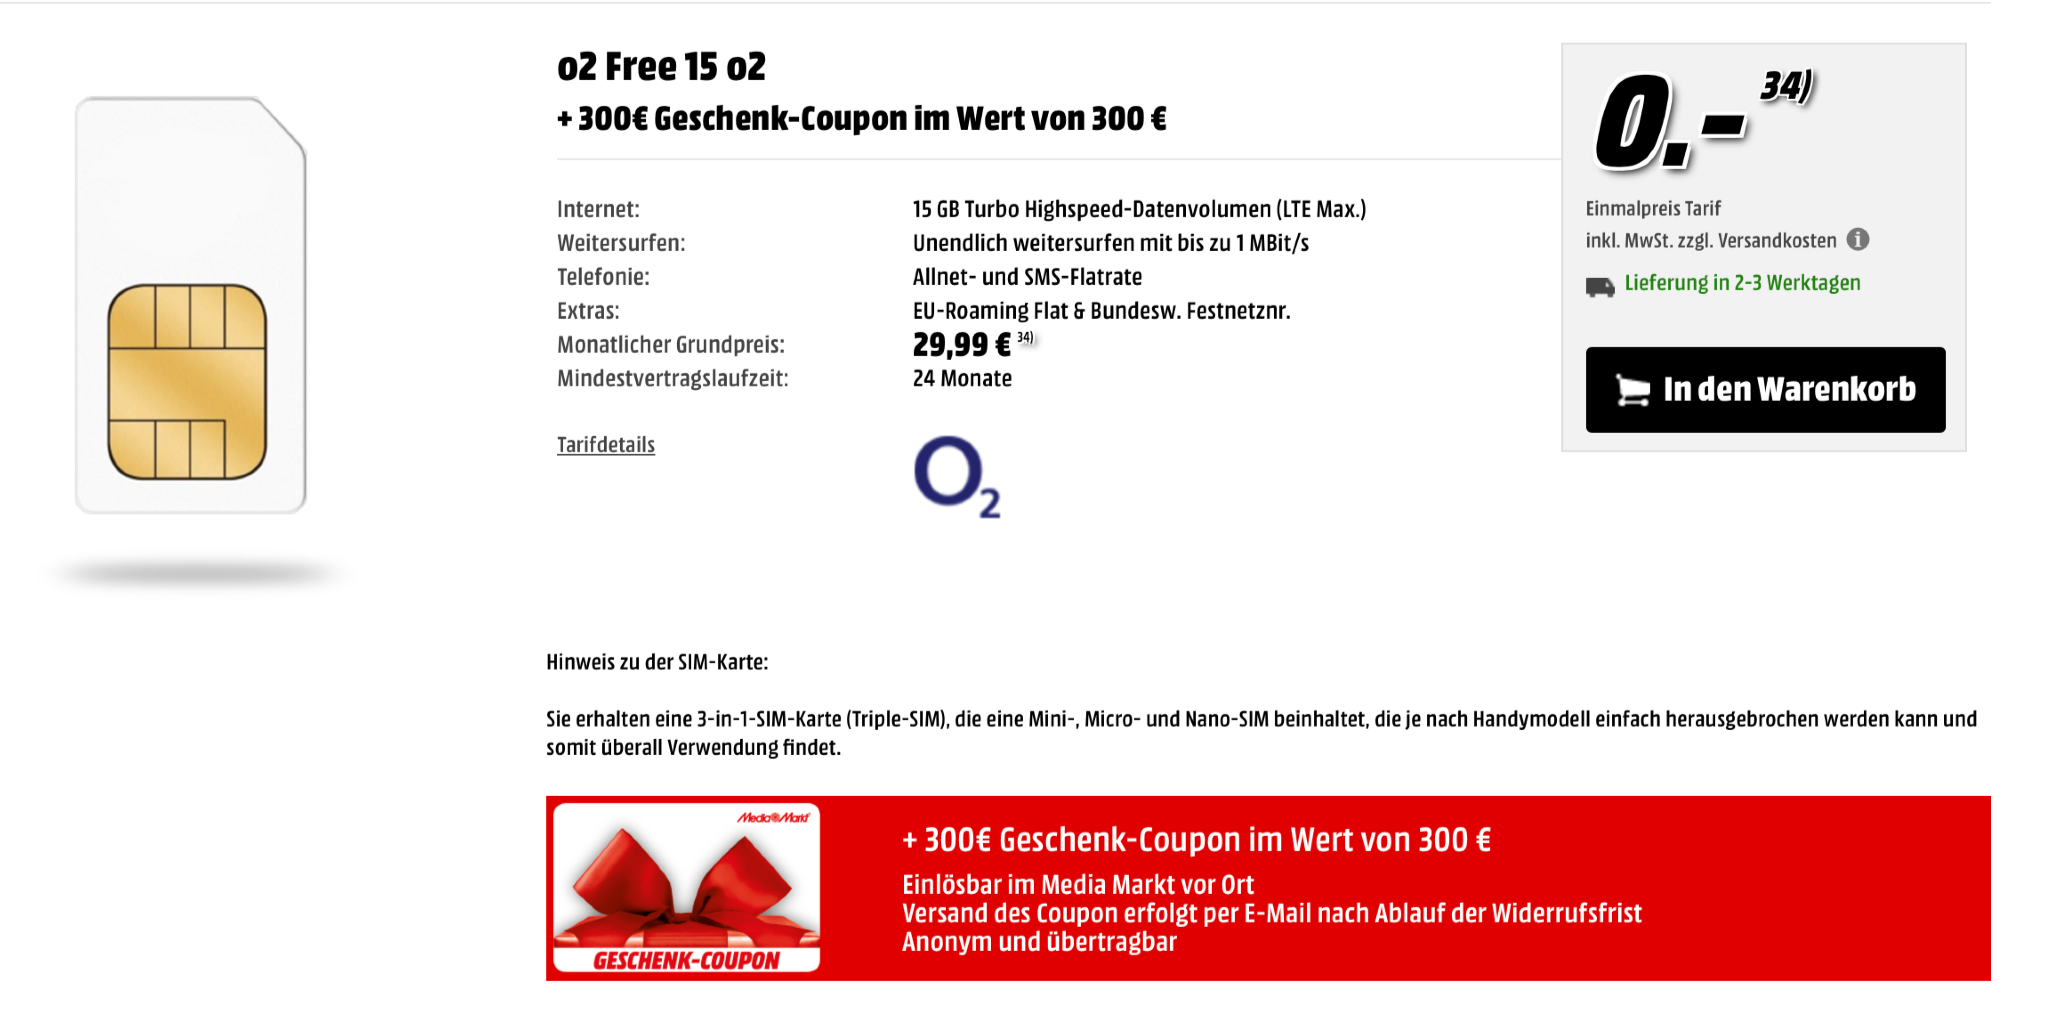 o2 free media markt gutschein gutscheincode ultras art plettenberg aquamagis gutschein. Black Bedroom Furniture Sets. Home Design Ideas